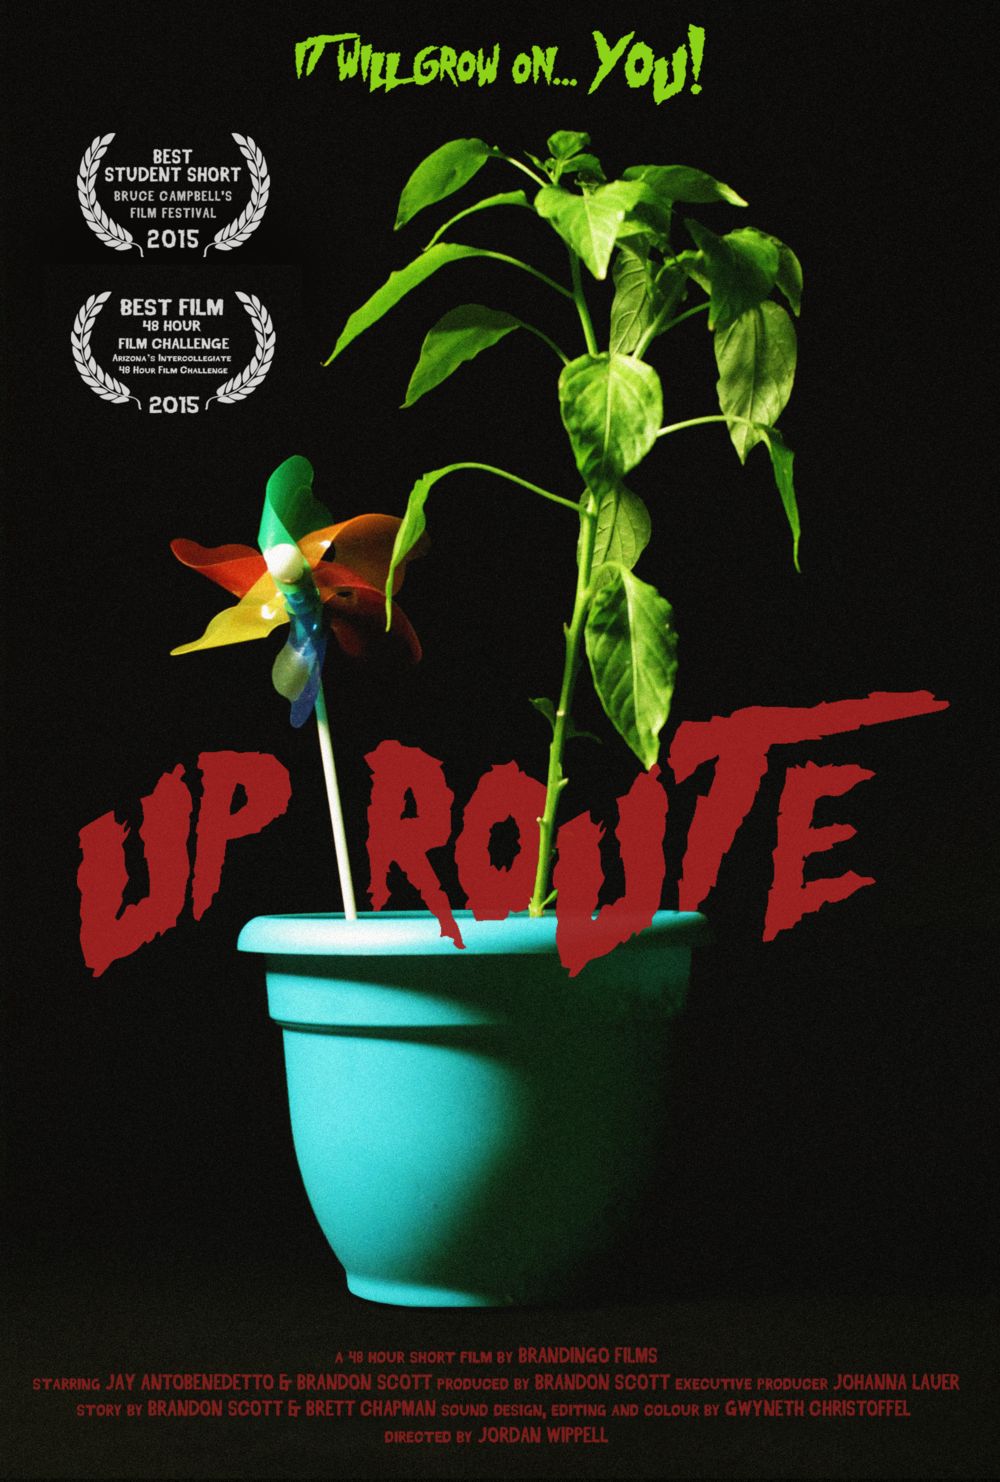 Up Route (2015) - Producer/Writer/Actor